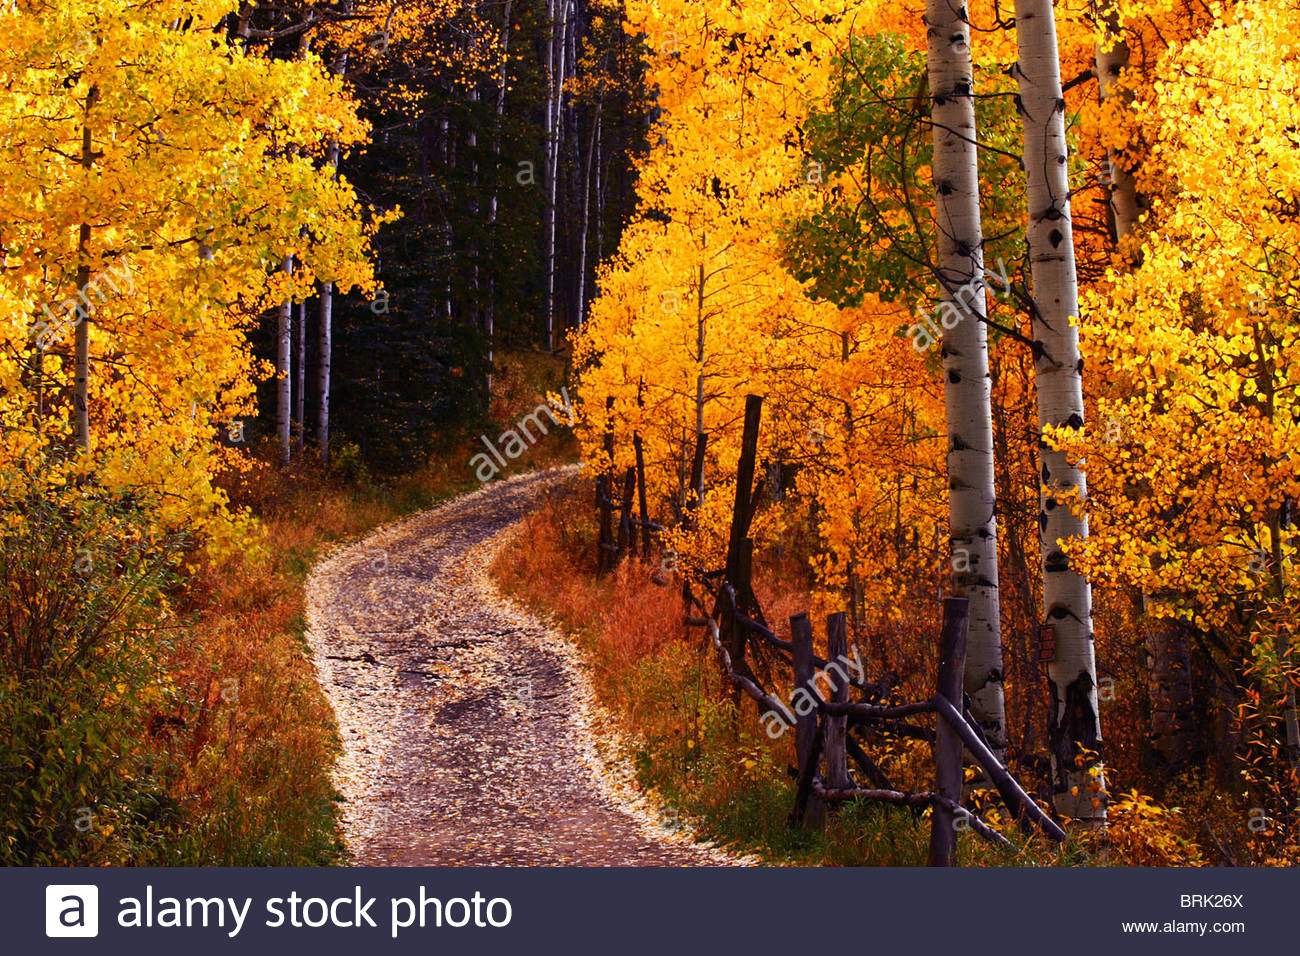 Colorado fall colors in the high country. - Stock Image